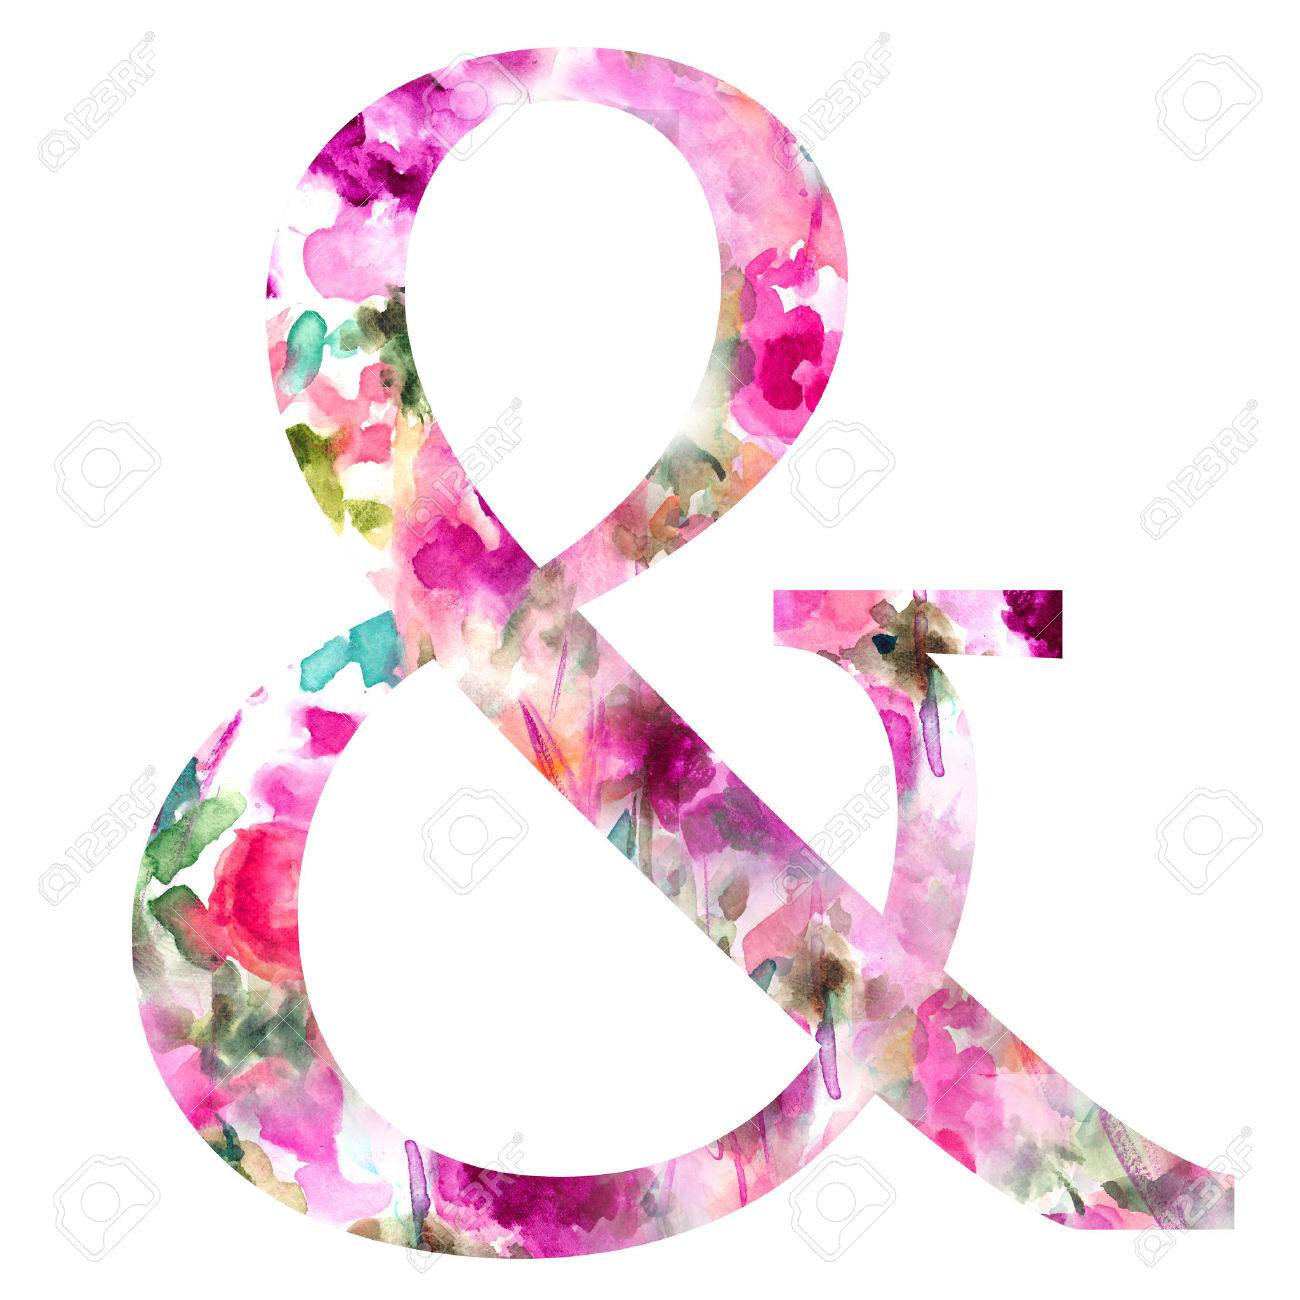 Watercolor Ampersand Images, Stock Pictures, Royalty Free